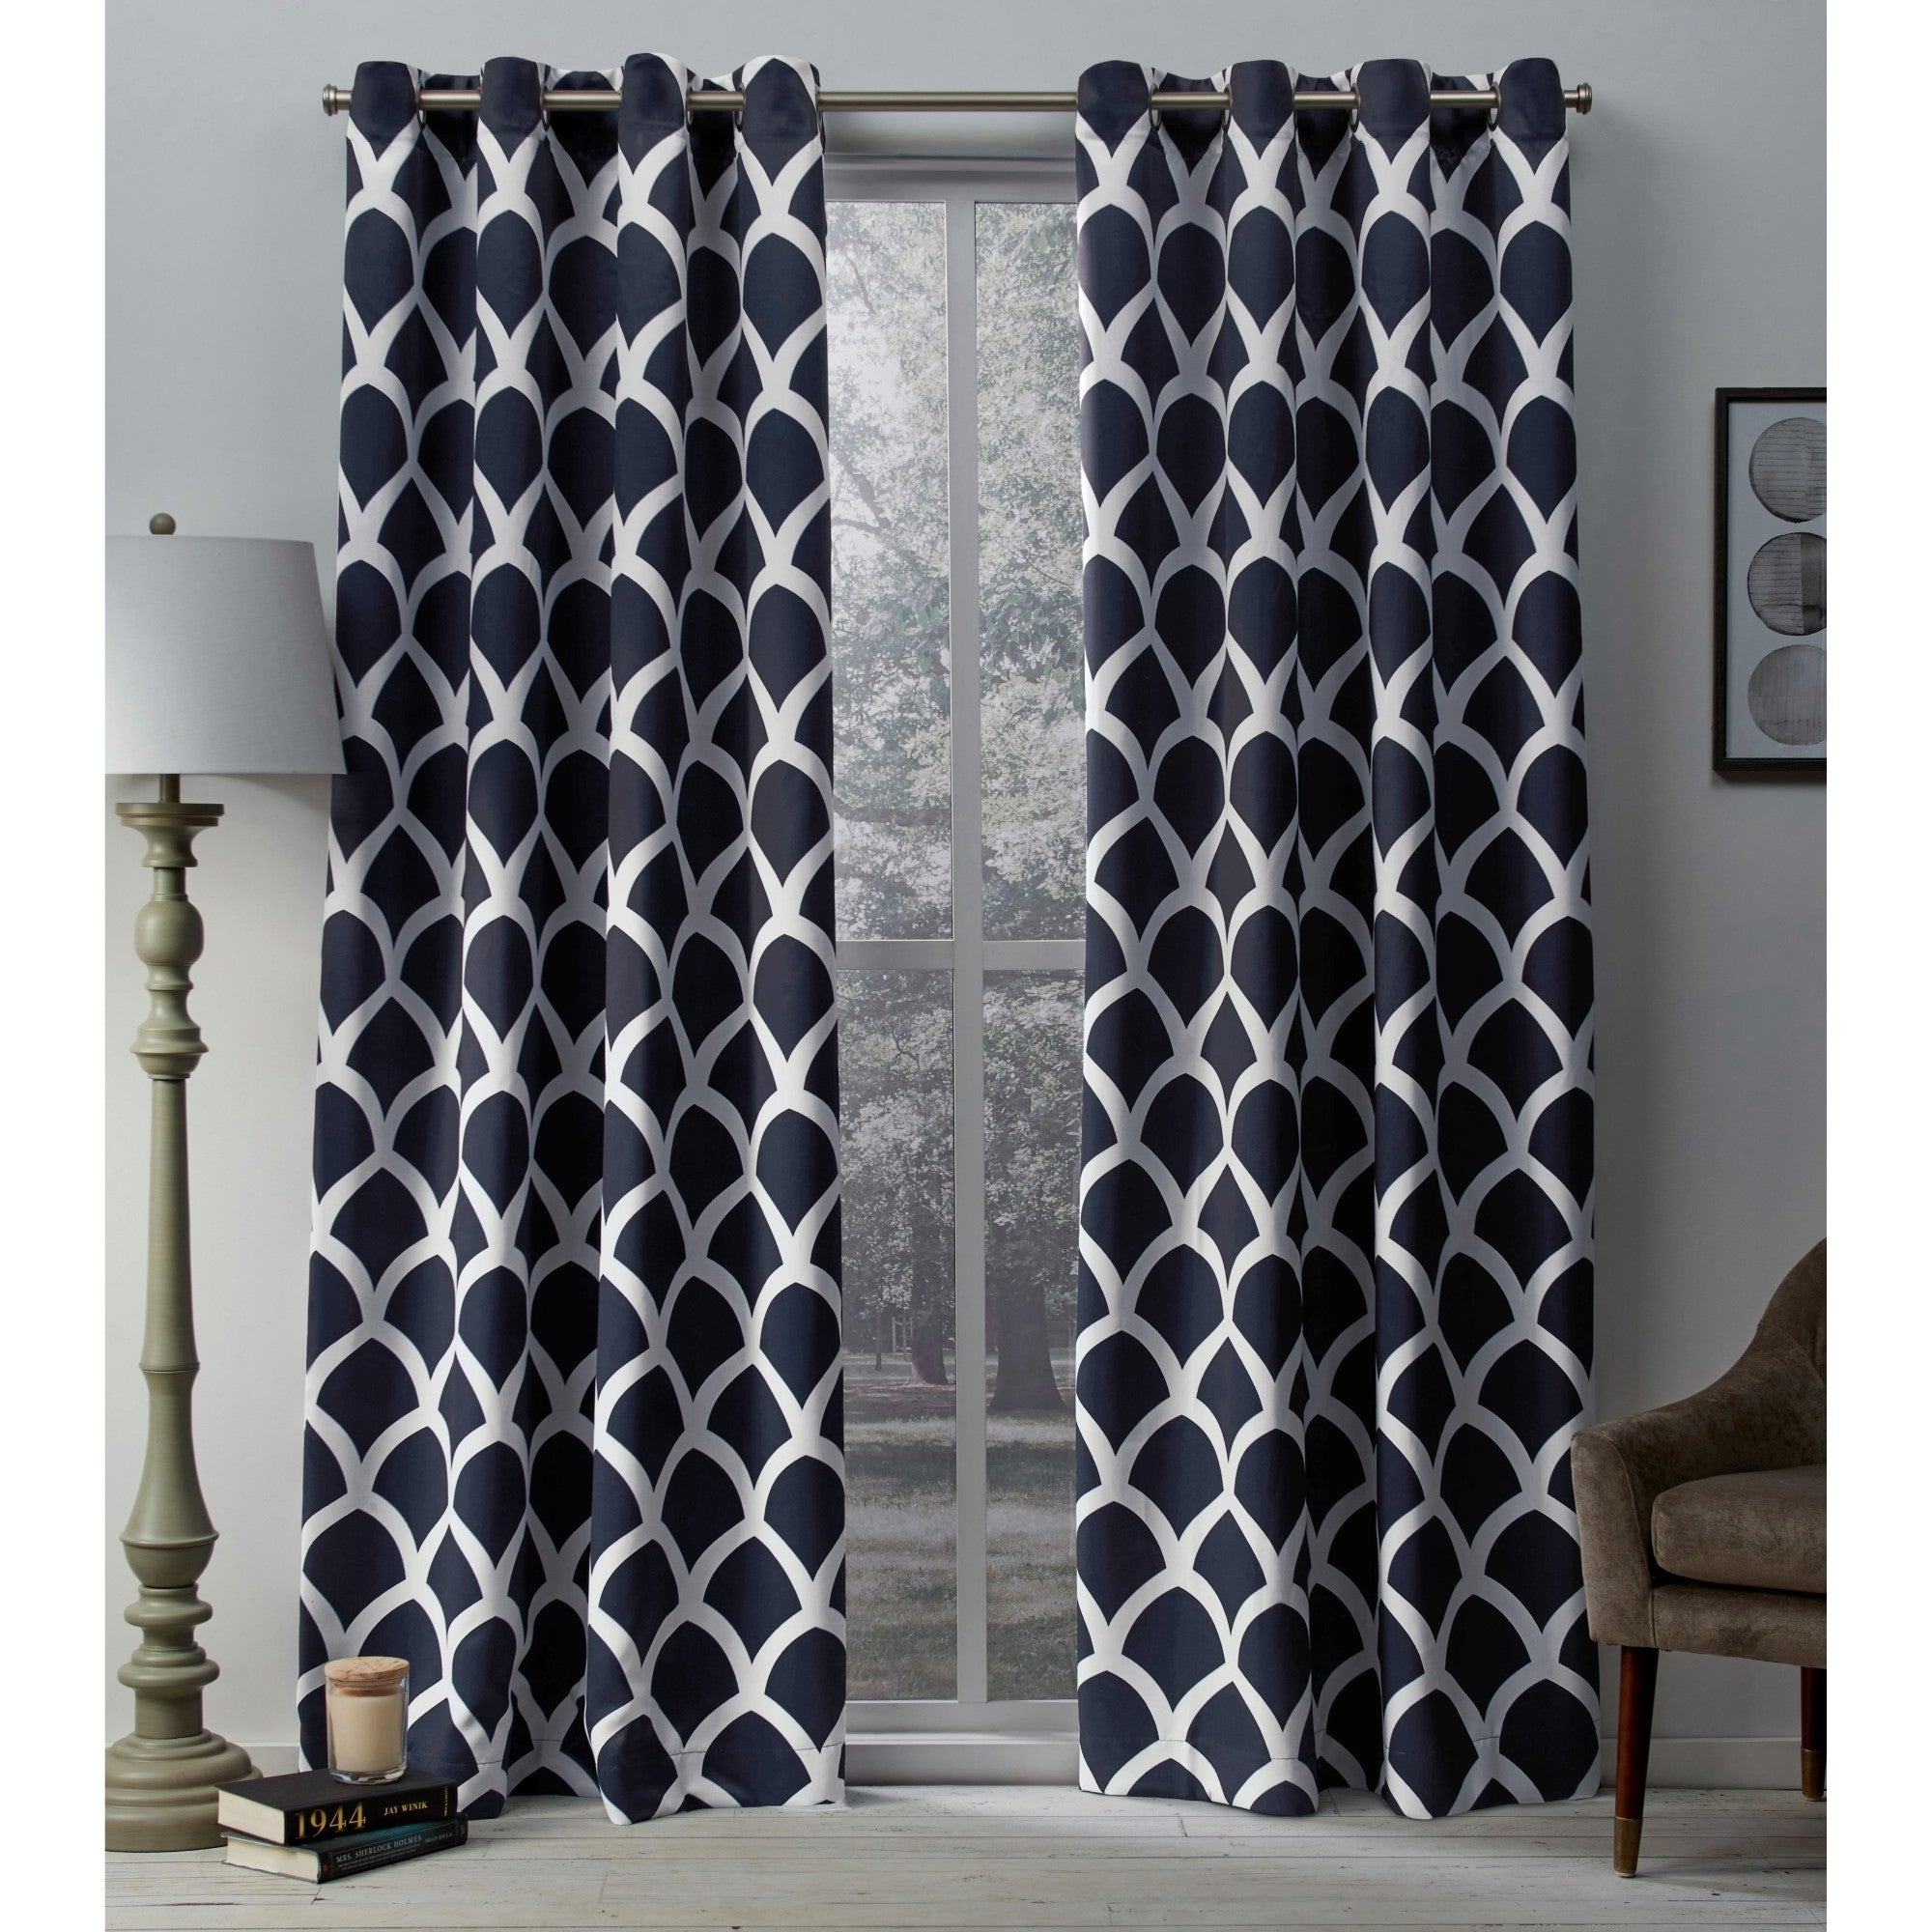 The Curated Nomad Ames Sateen Woven Blackout Grommet Top Curtain Panel Pair In The Curated Nomad Duane Blackout Curtain Panel Pairs (View 22 of 30)